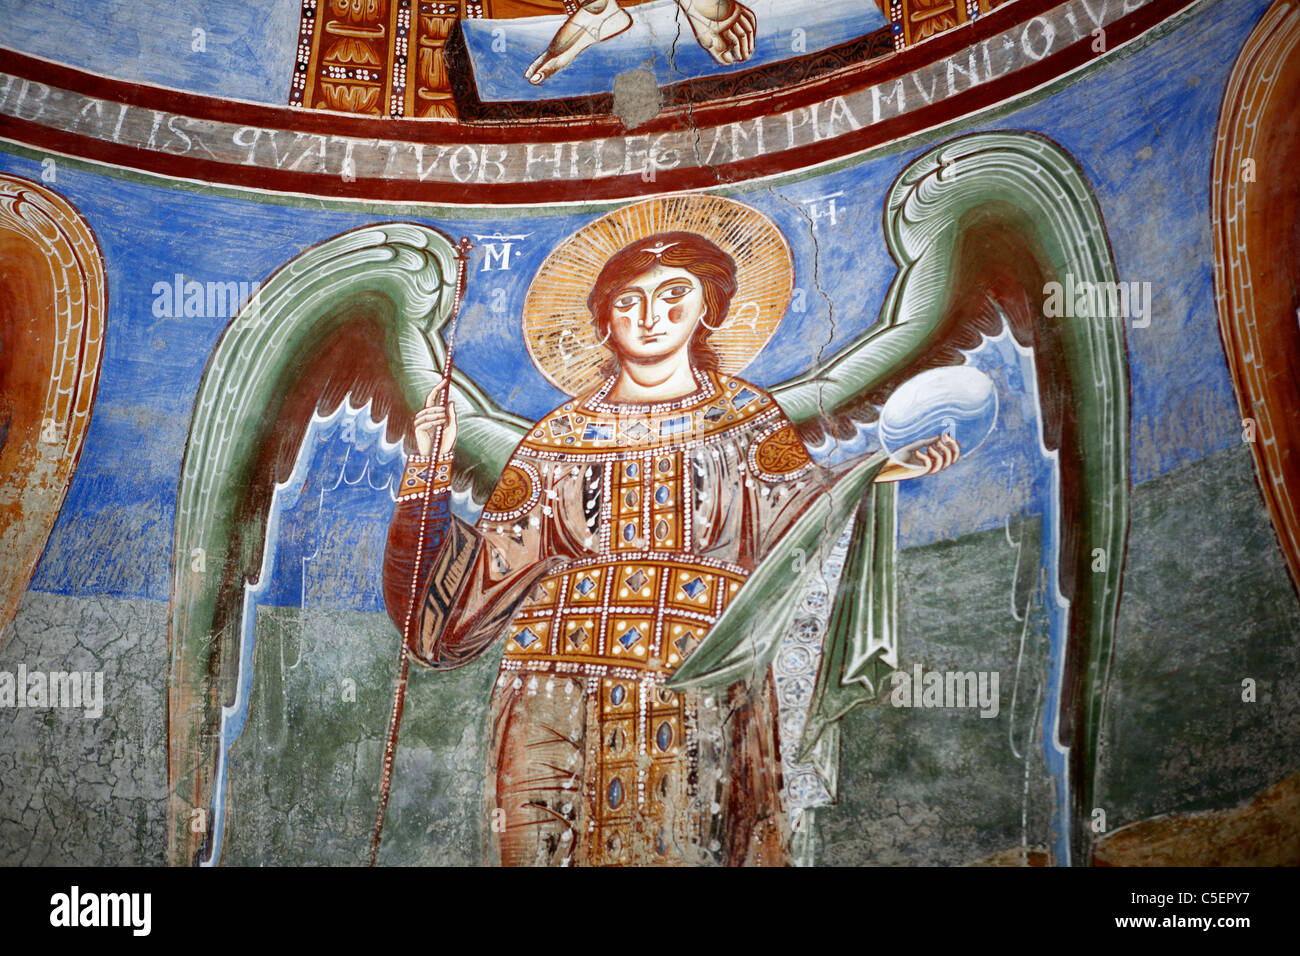 Mural painting in basilica Sant'Angelo in Formis (9th century), Campania, Italy Stock Photo